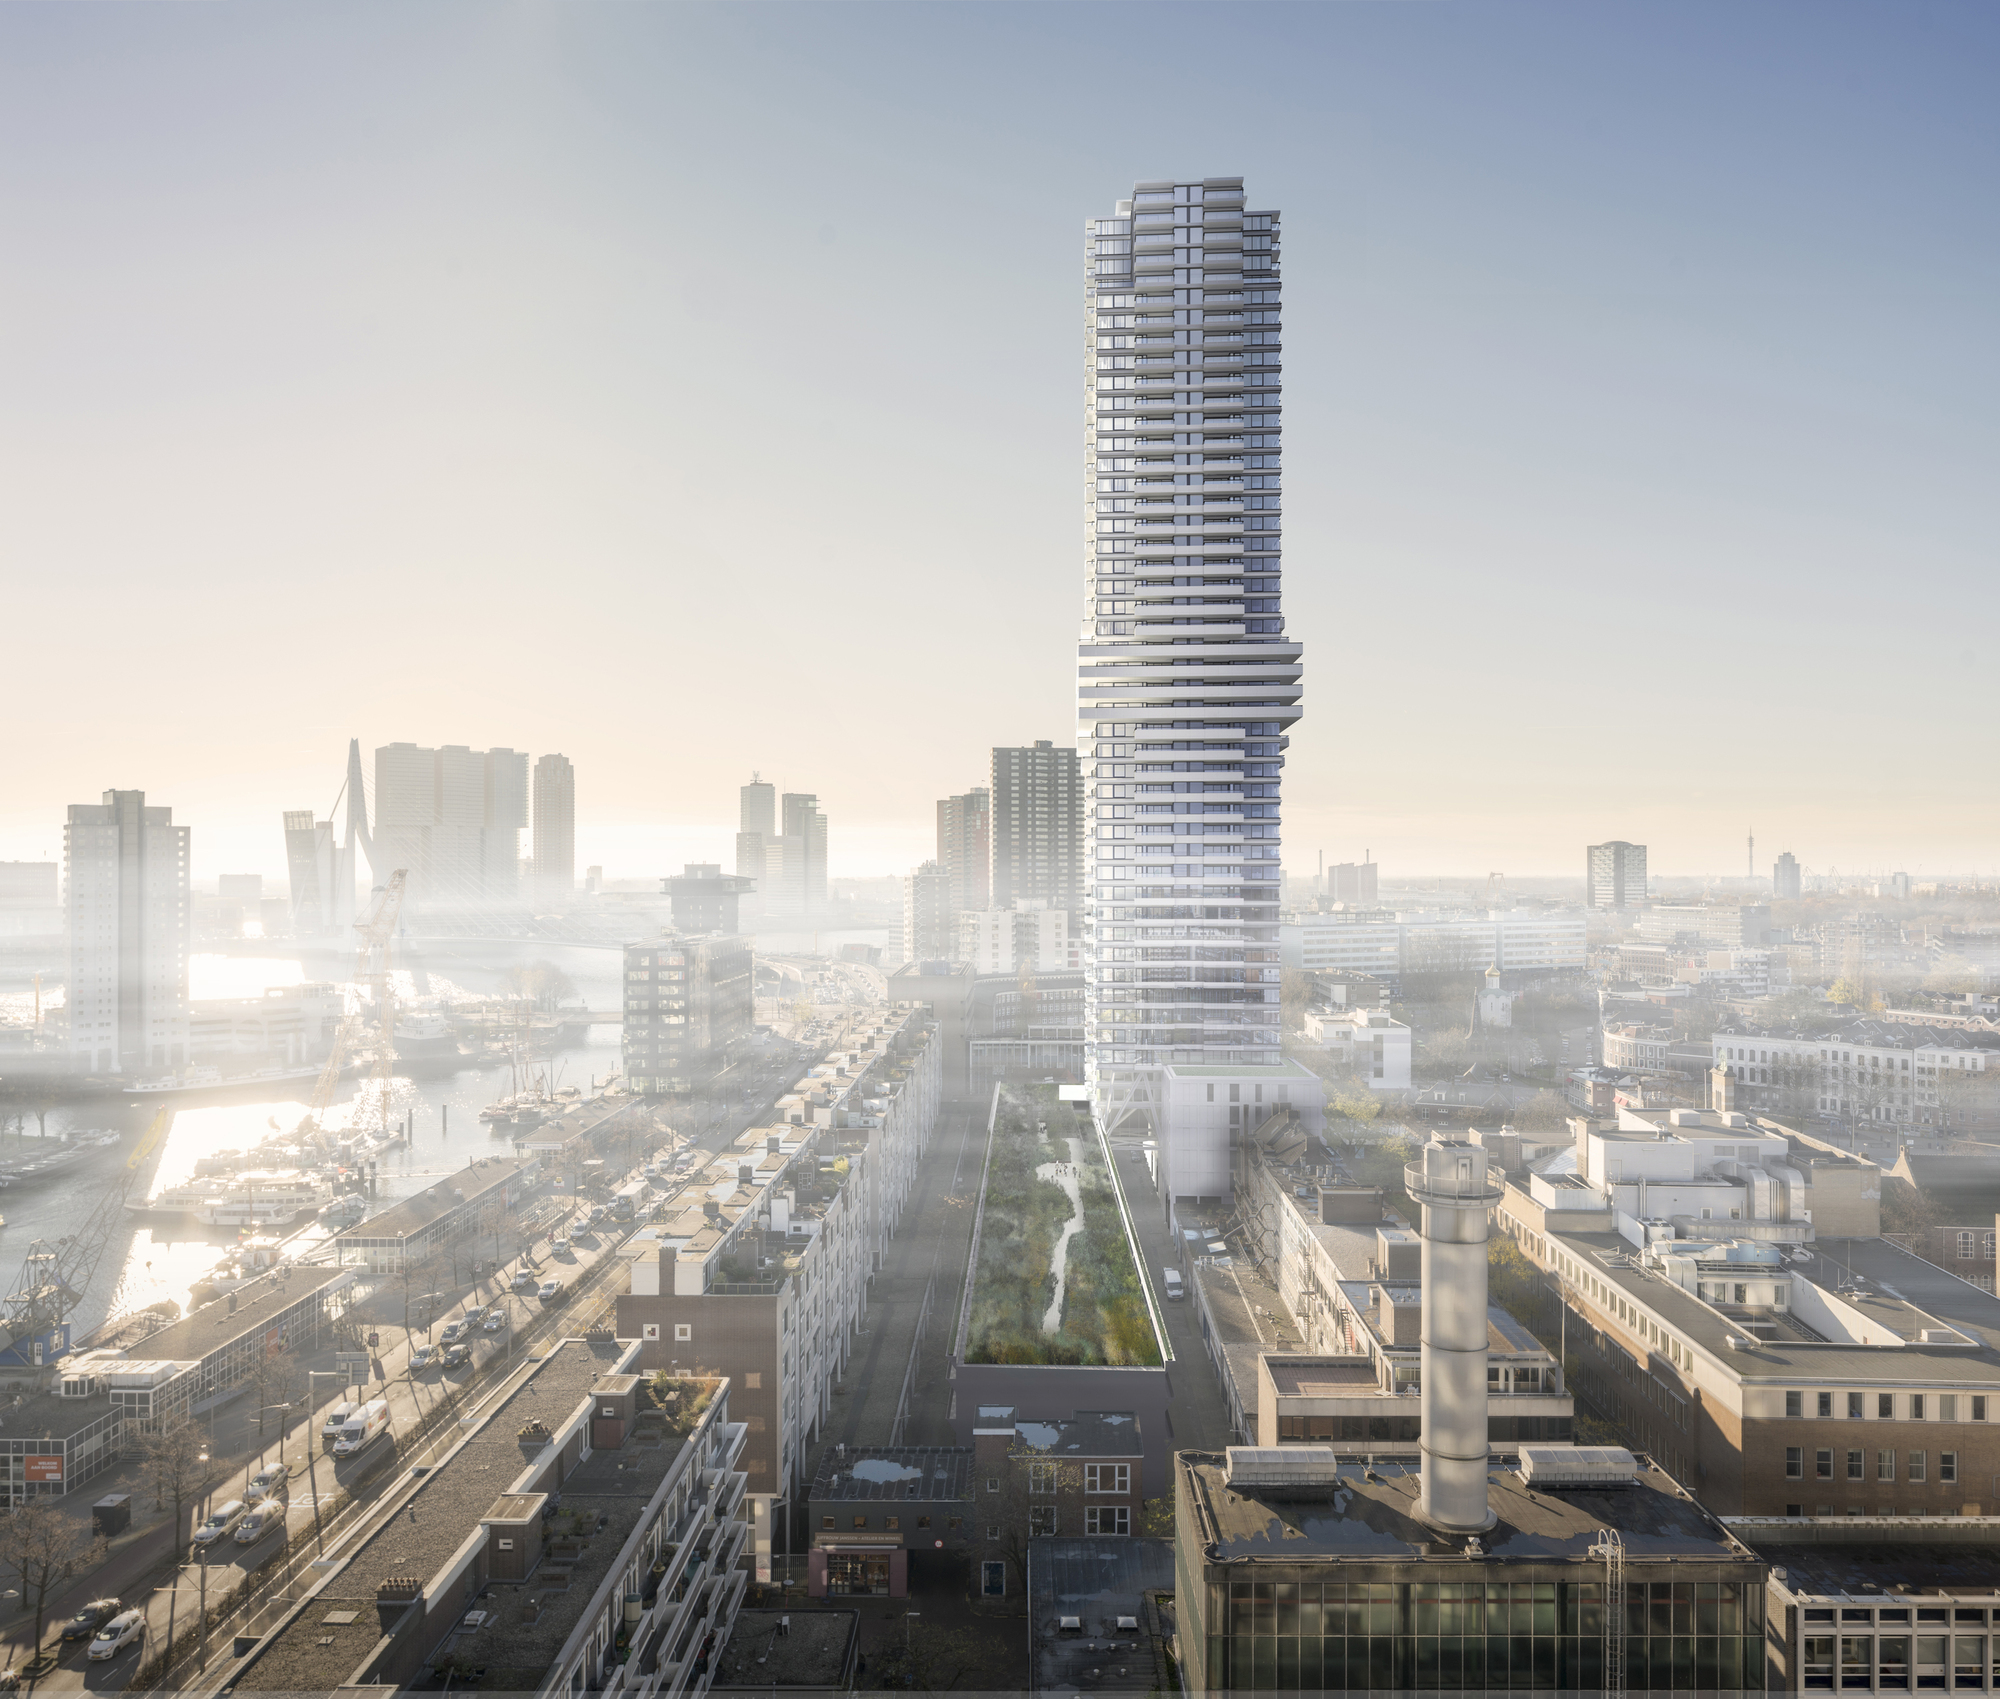 Rotterdam's Skyline To Reach New Heights With 150 Meter